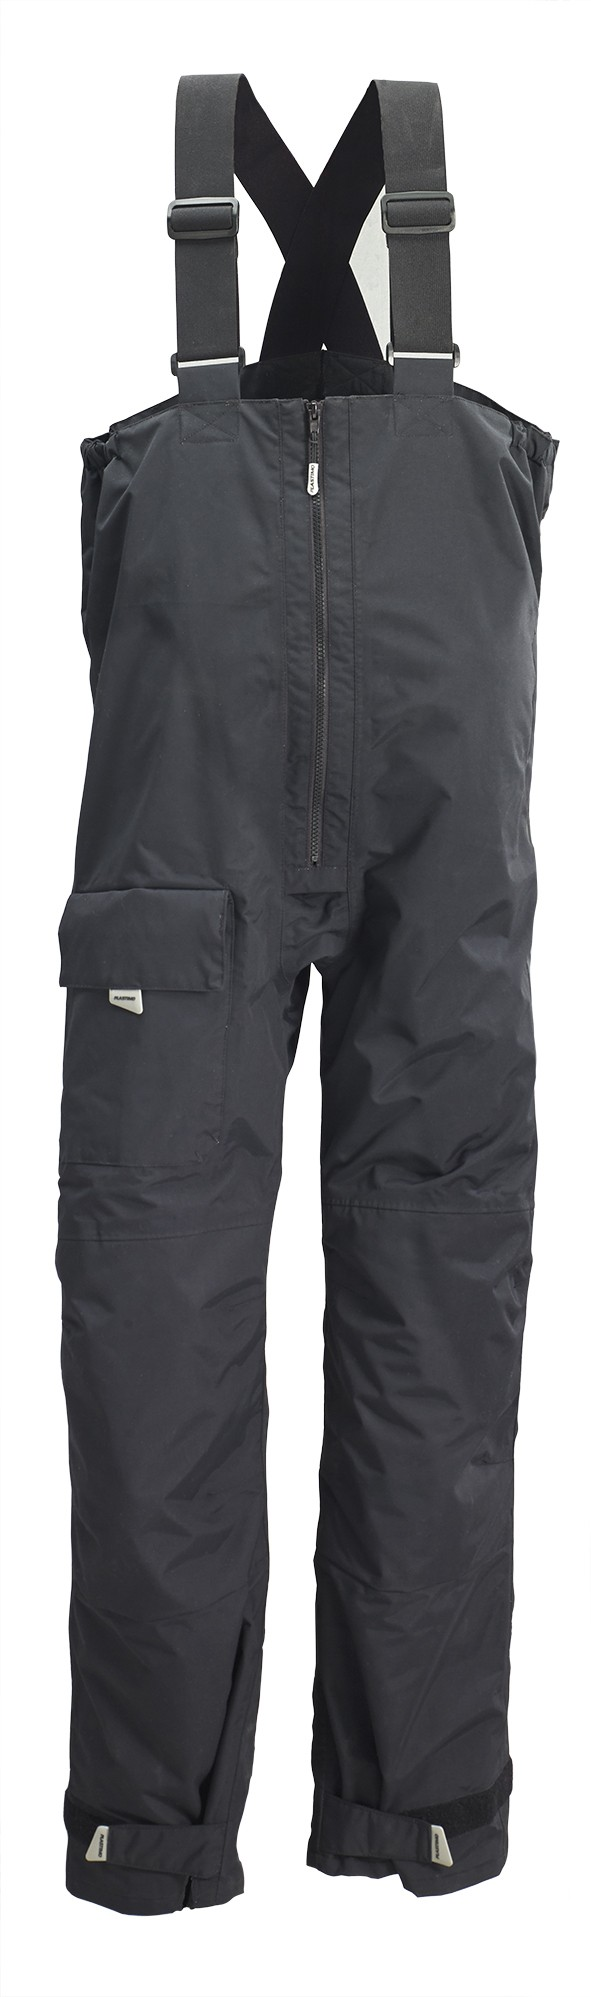 Coastal high-fit trousers